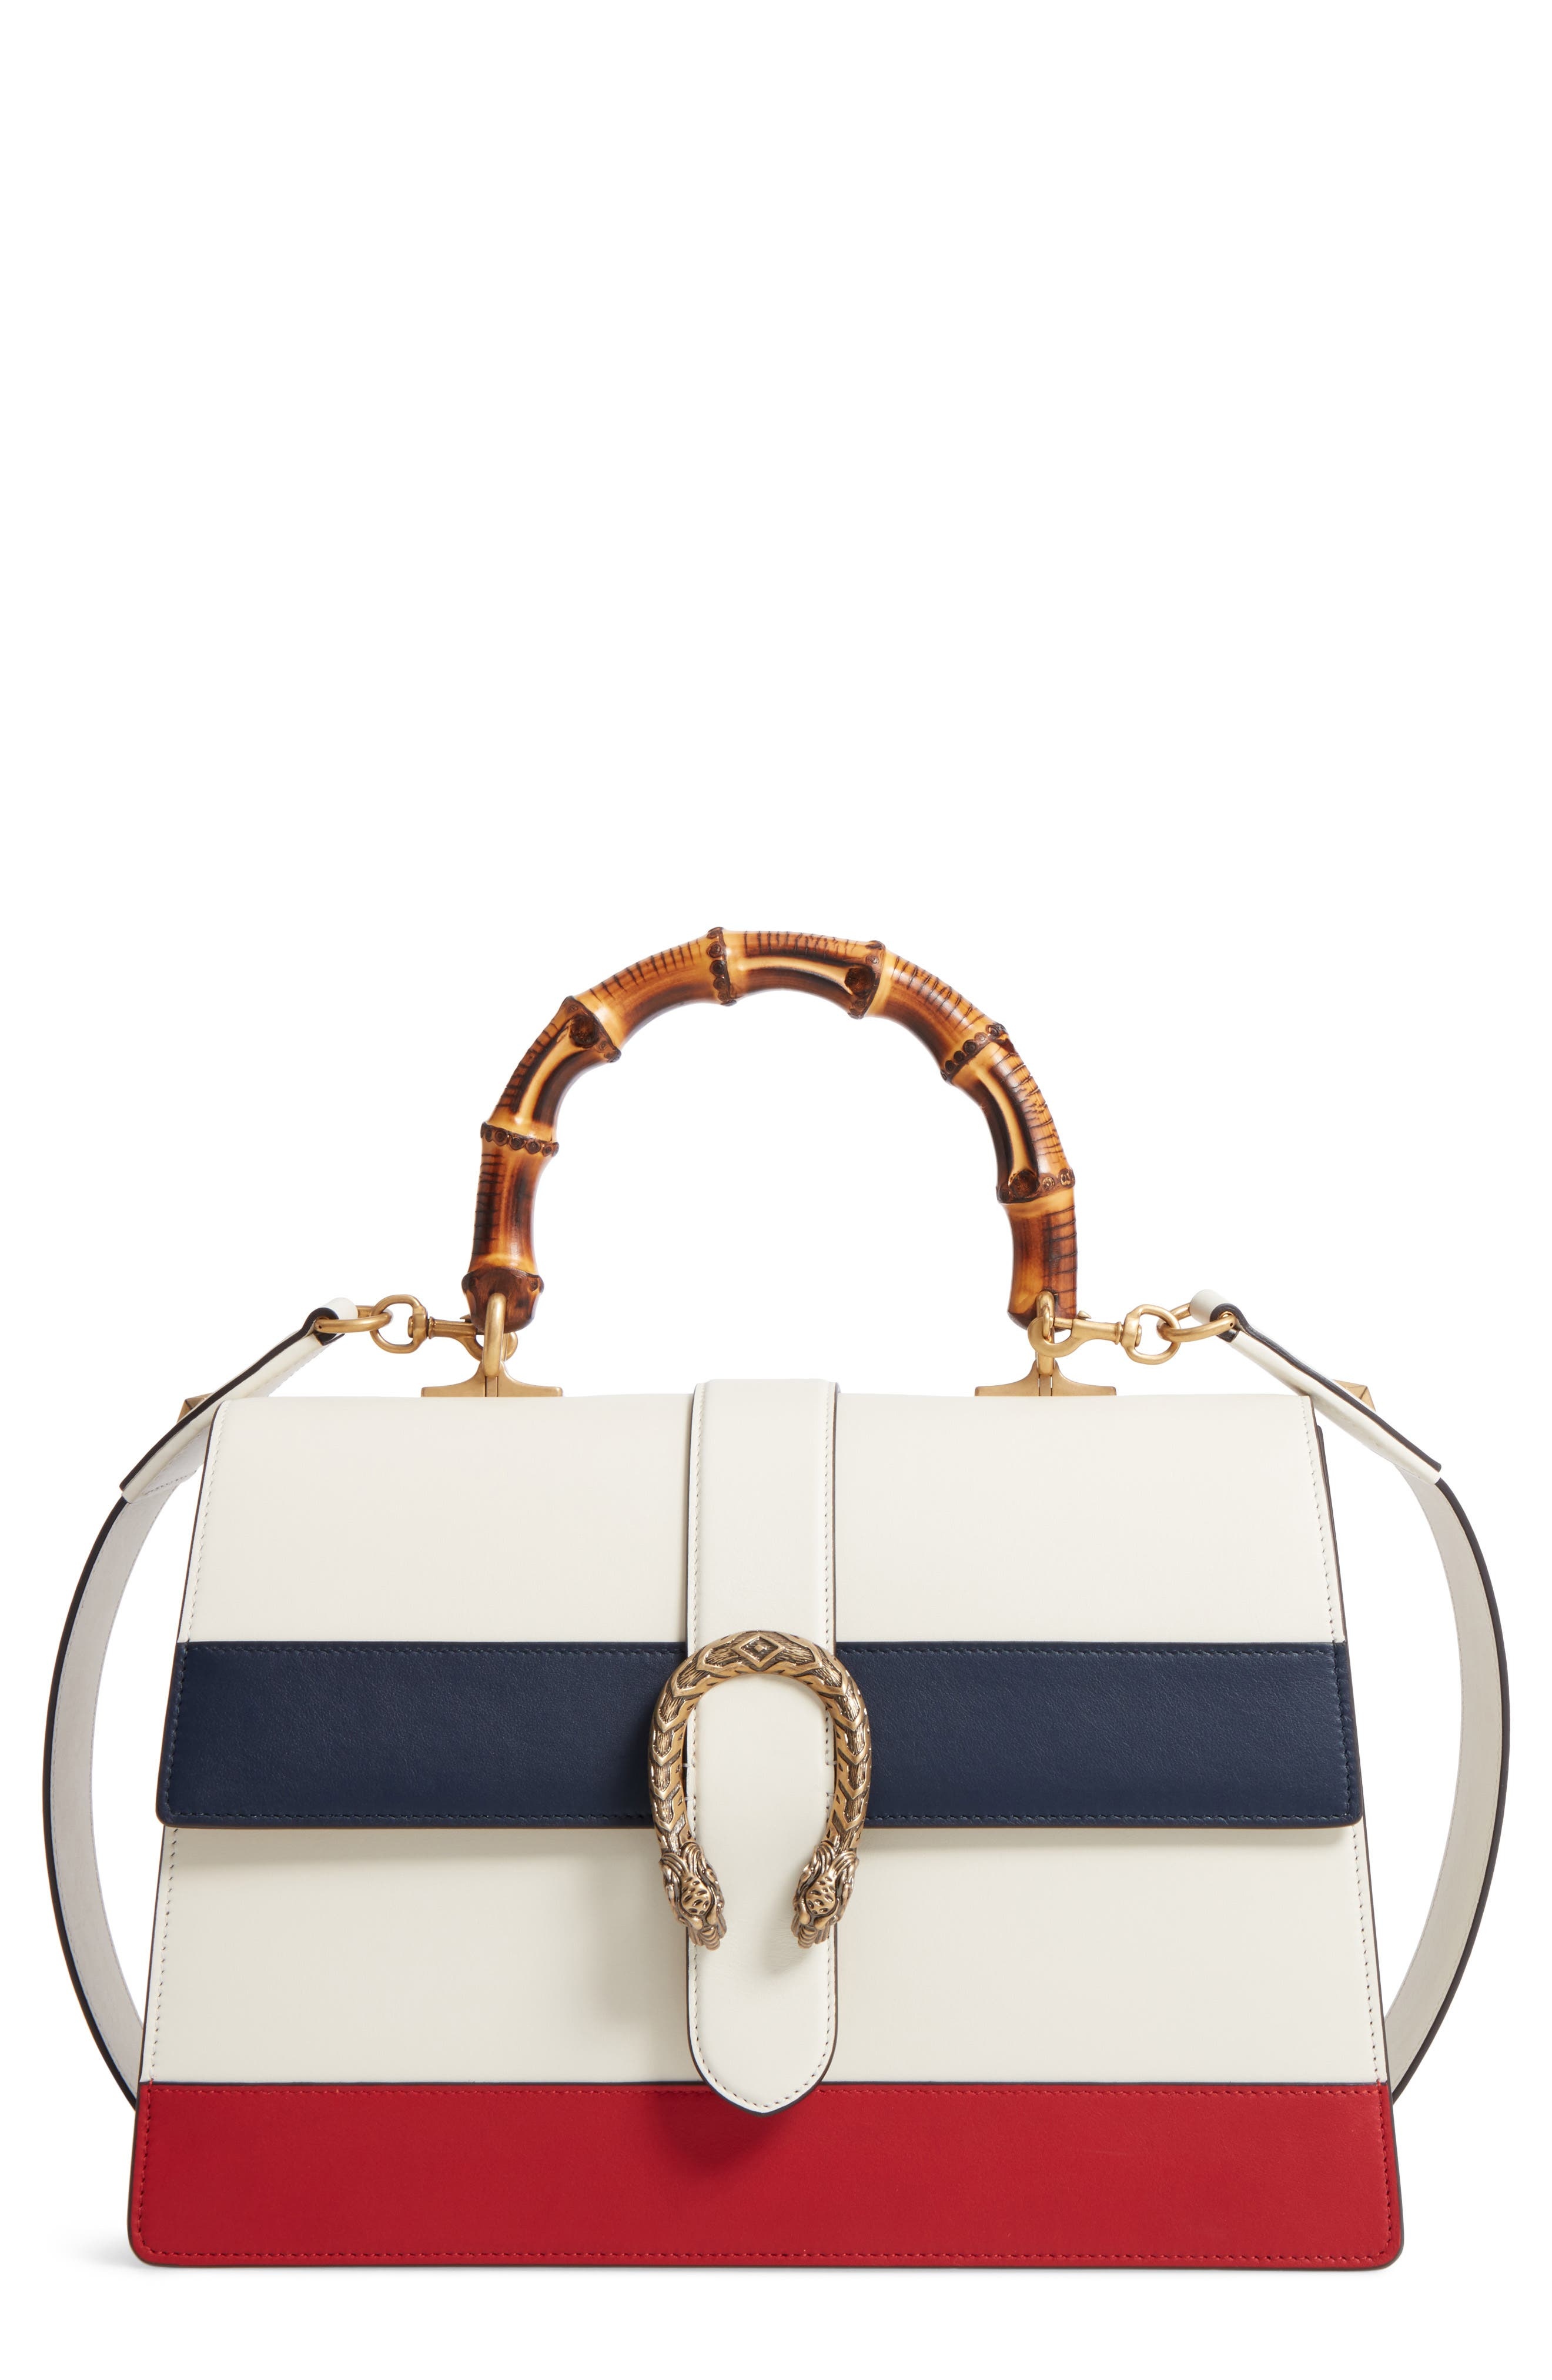 GUCCI, Large Dionysus Top Handle Leather Shoulder Bag, Main thumbnail 1, color, MYSTIC WHITE/ BLUE/ RED